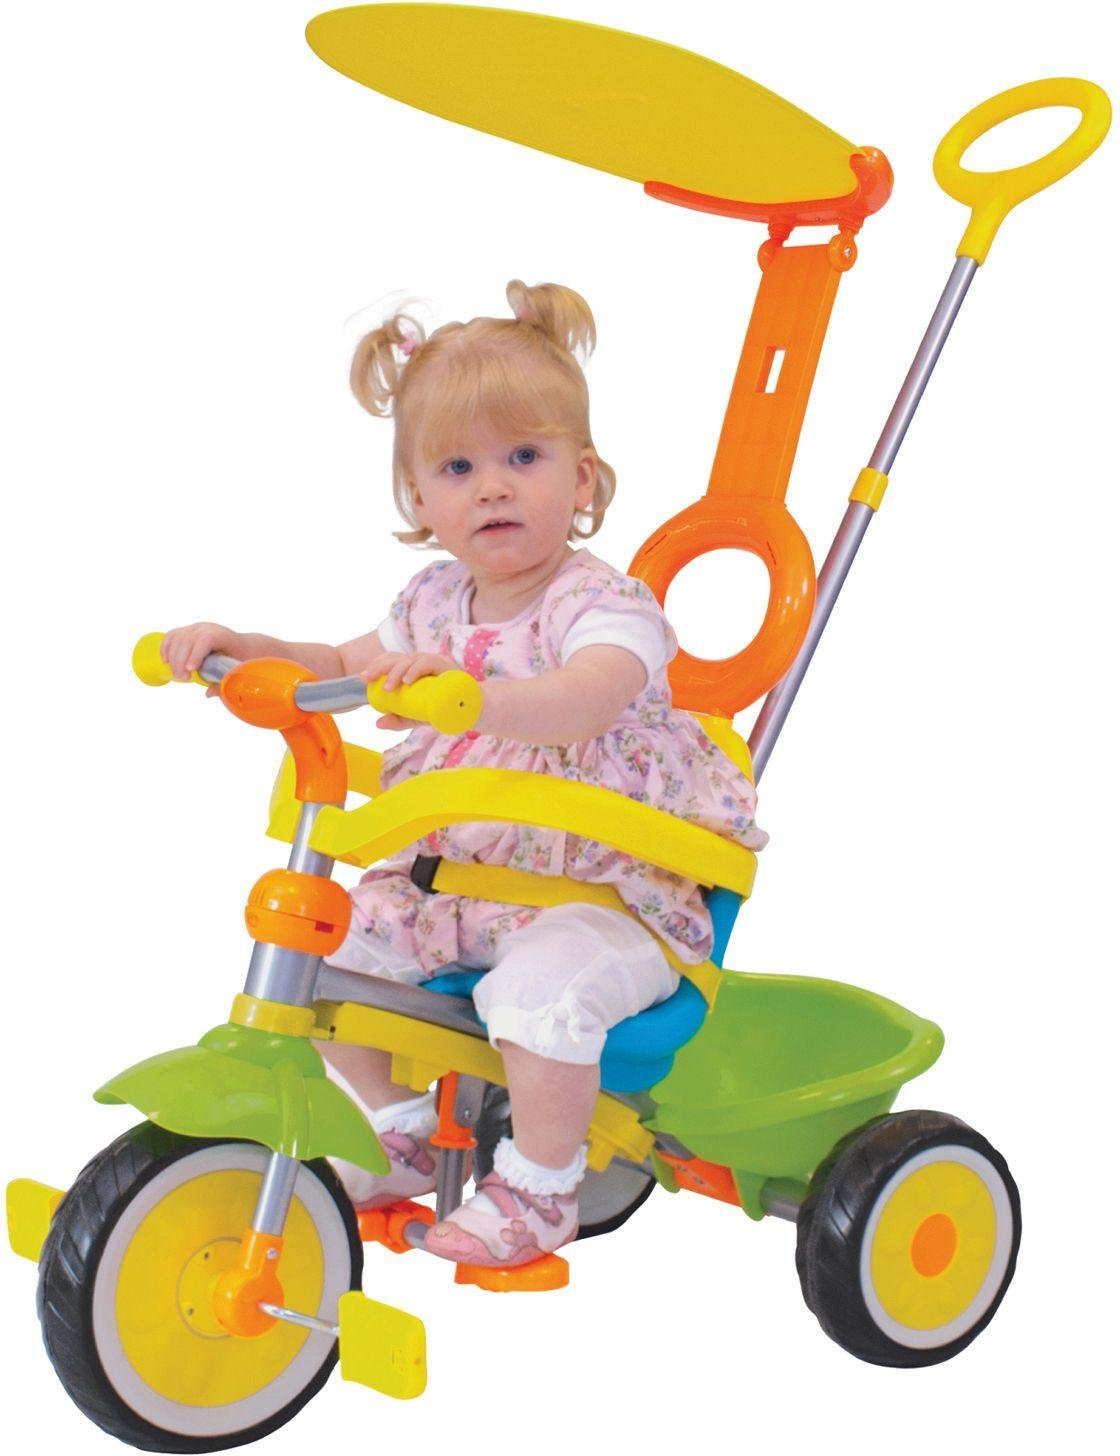 Image of Grow and Go Deluxe Trike.